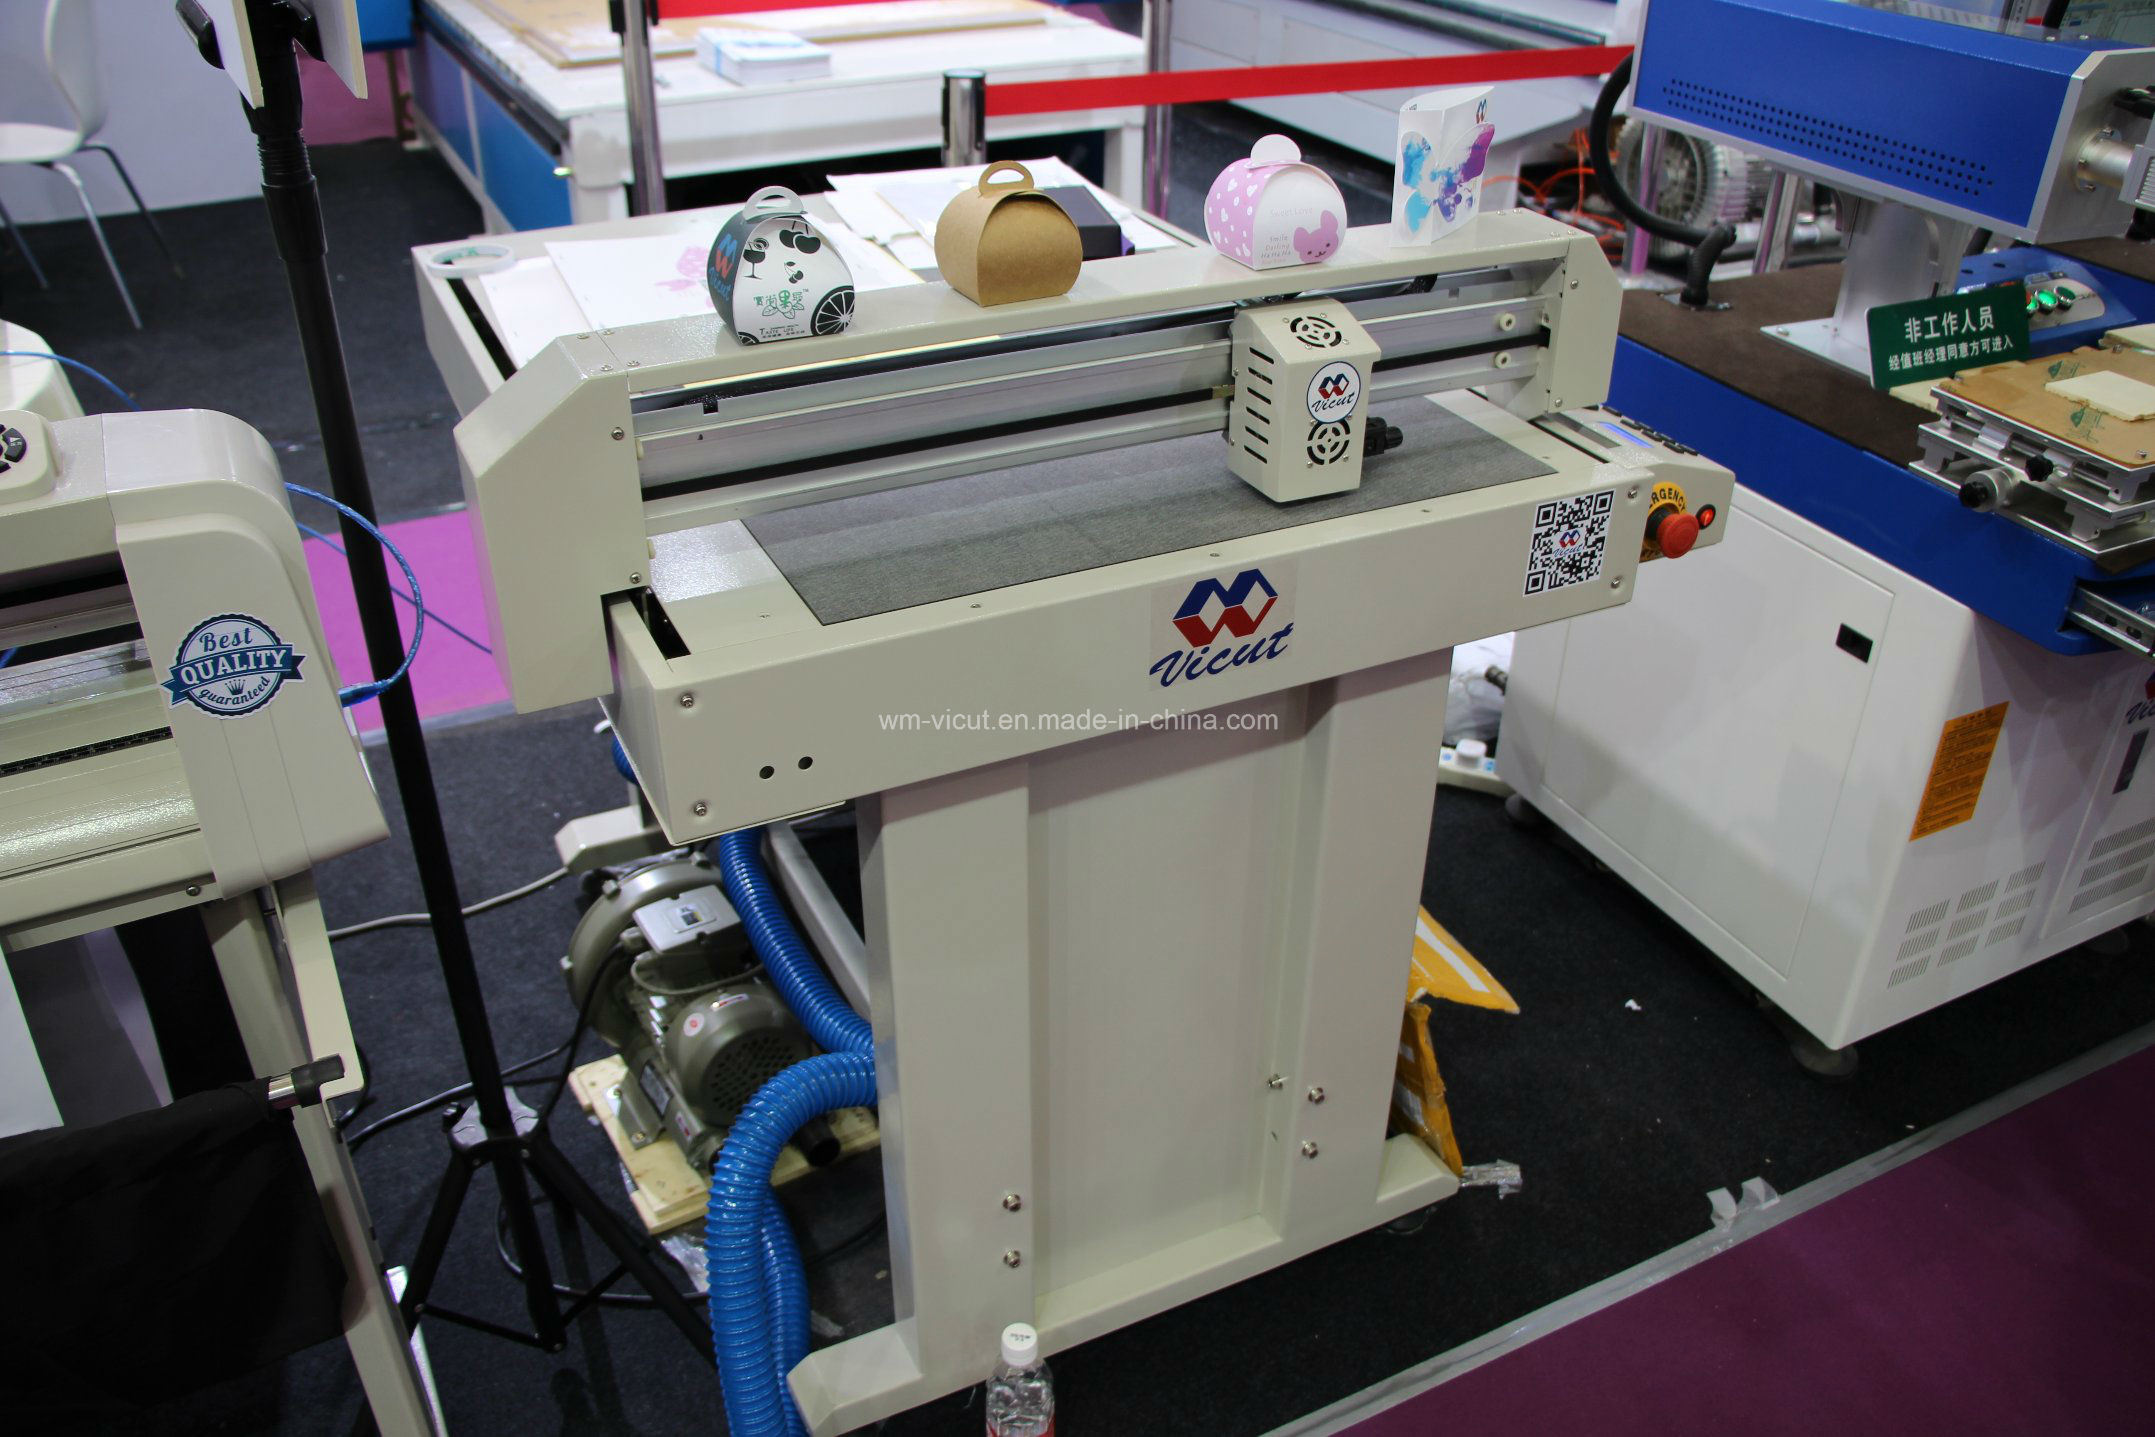 2016 600*900mm Cardboard Flatbed Plotter Cutter